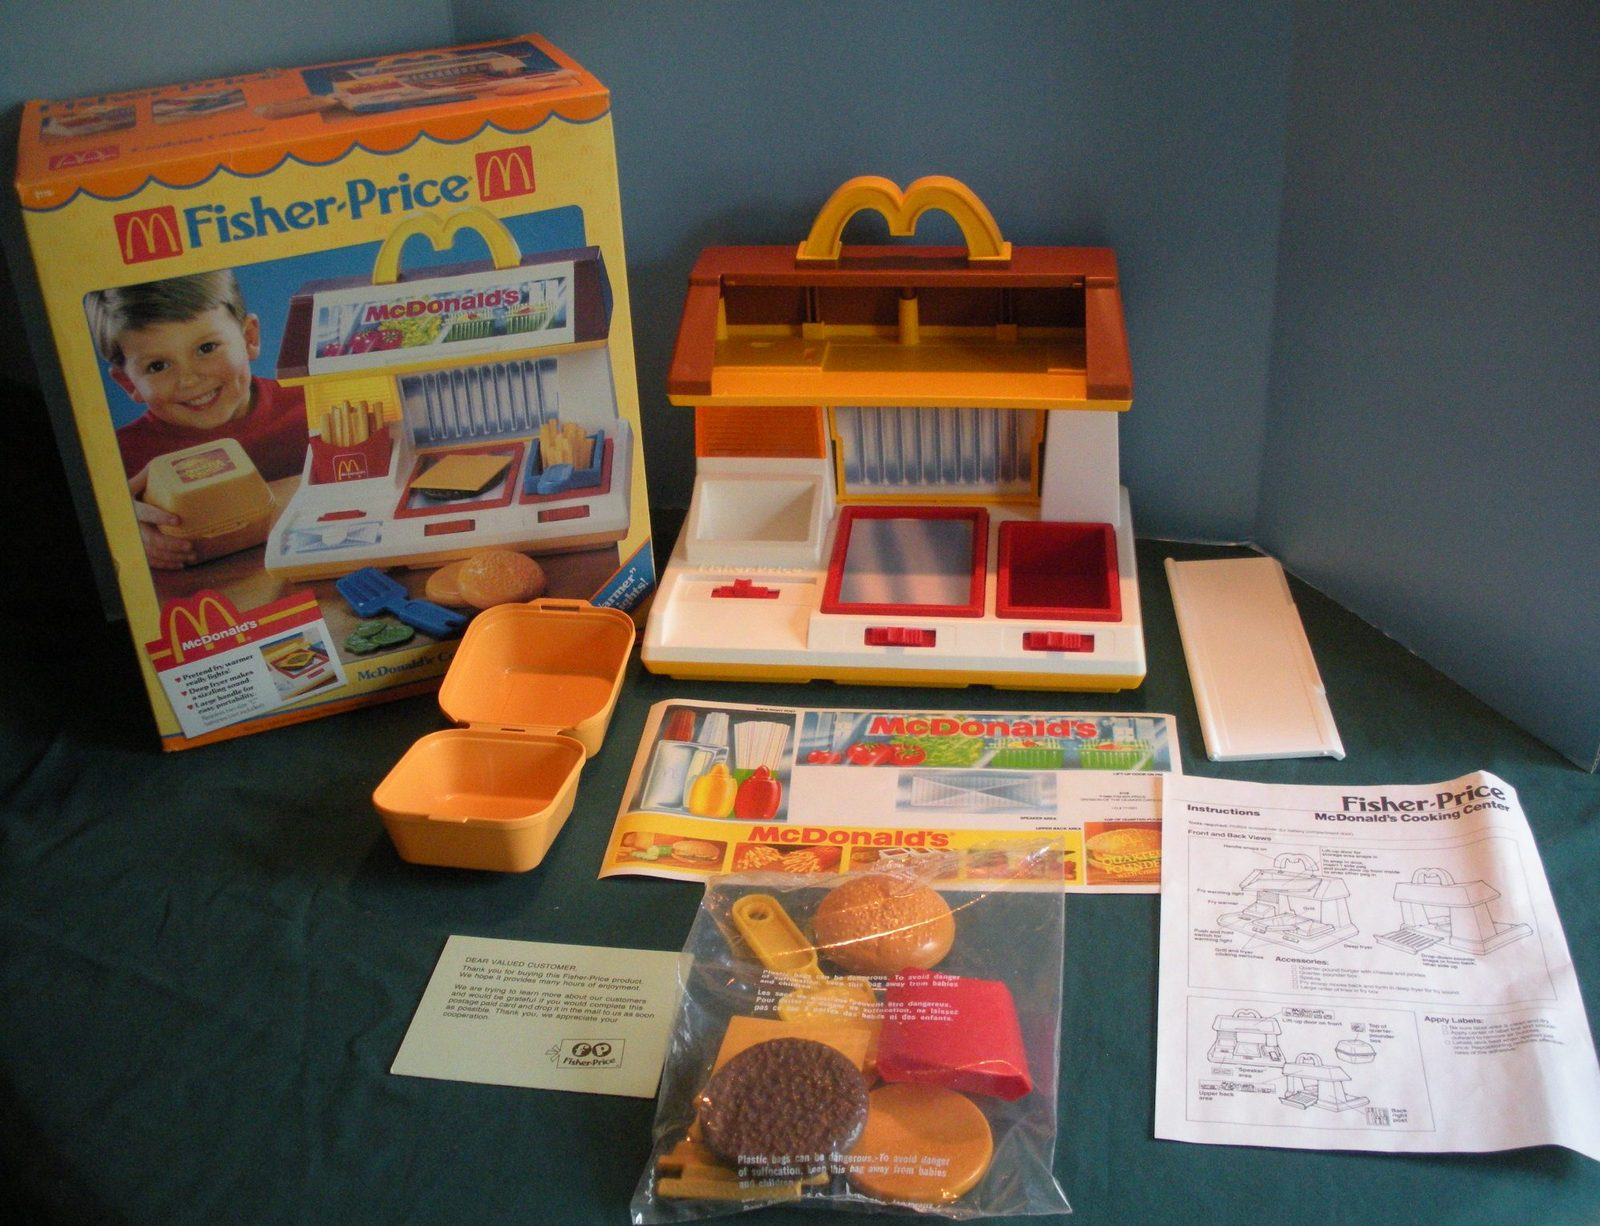 Rare Vtg. Fisher Price Fun-with-Food #2119 McDonald's Cooking Center w/Box! (C)